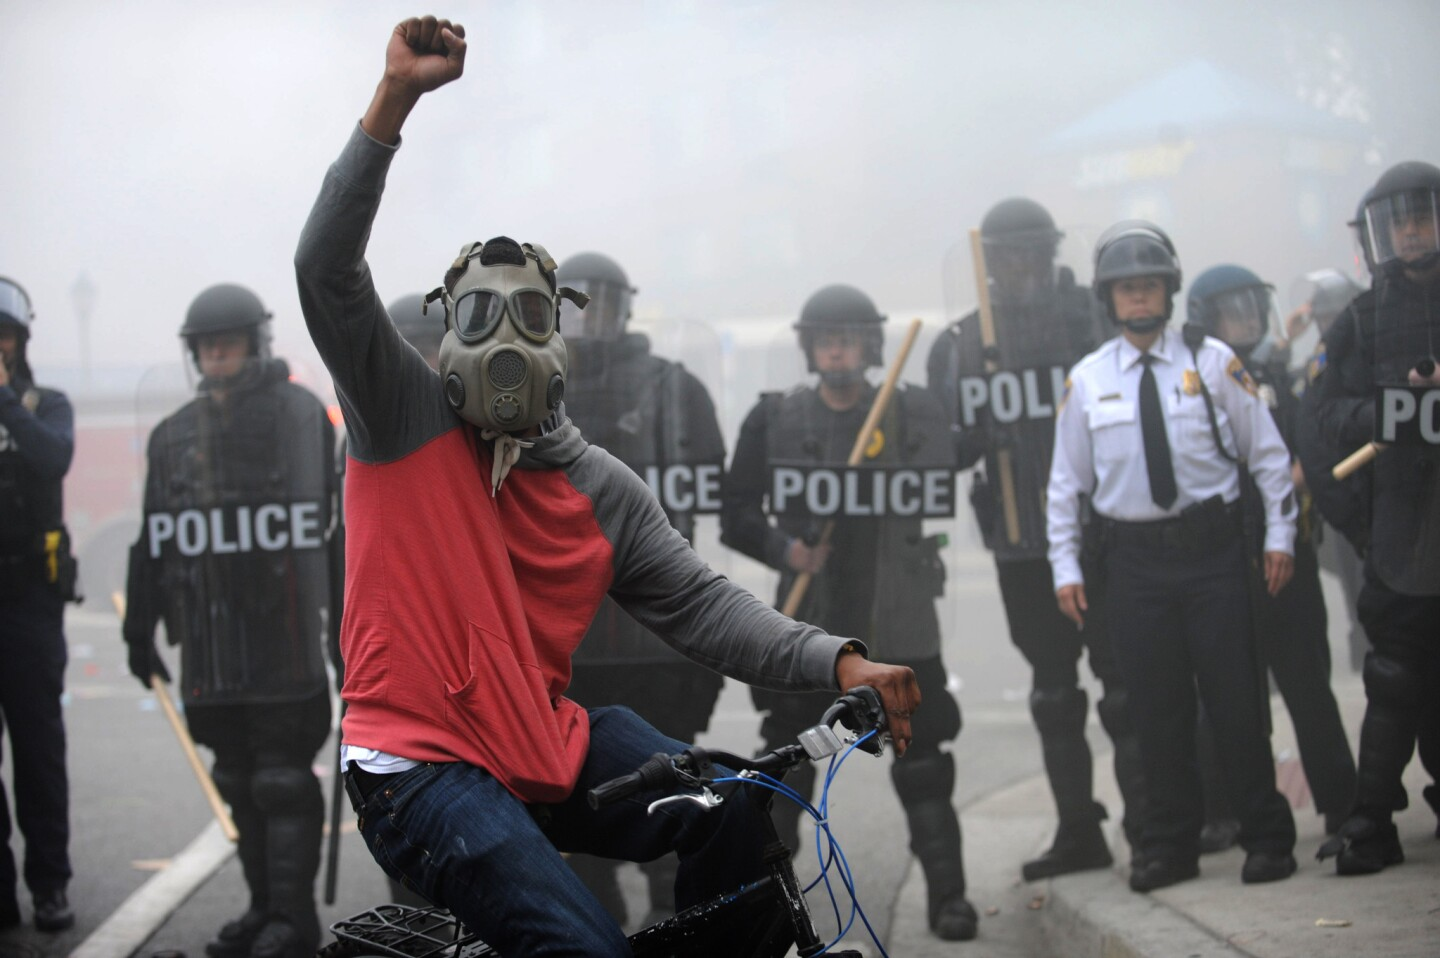 A protestor rides his bike in front of a police line at North and Pennsylvania Avenues on the day of Freddie Gray's funeral. Riots and looting broke out throughout the city.